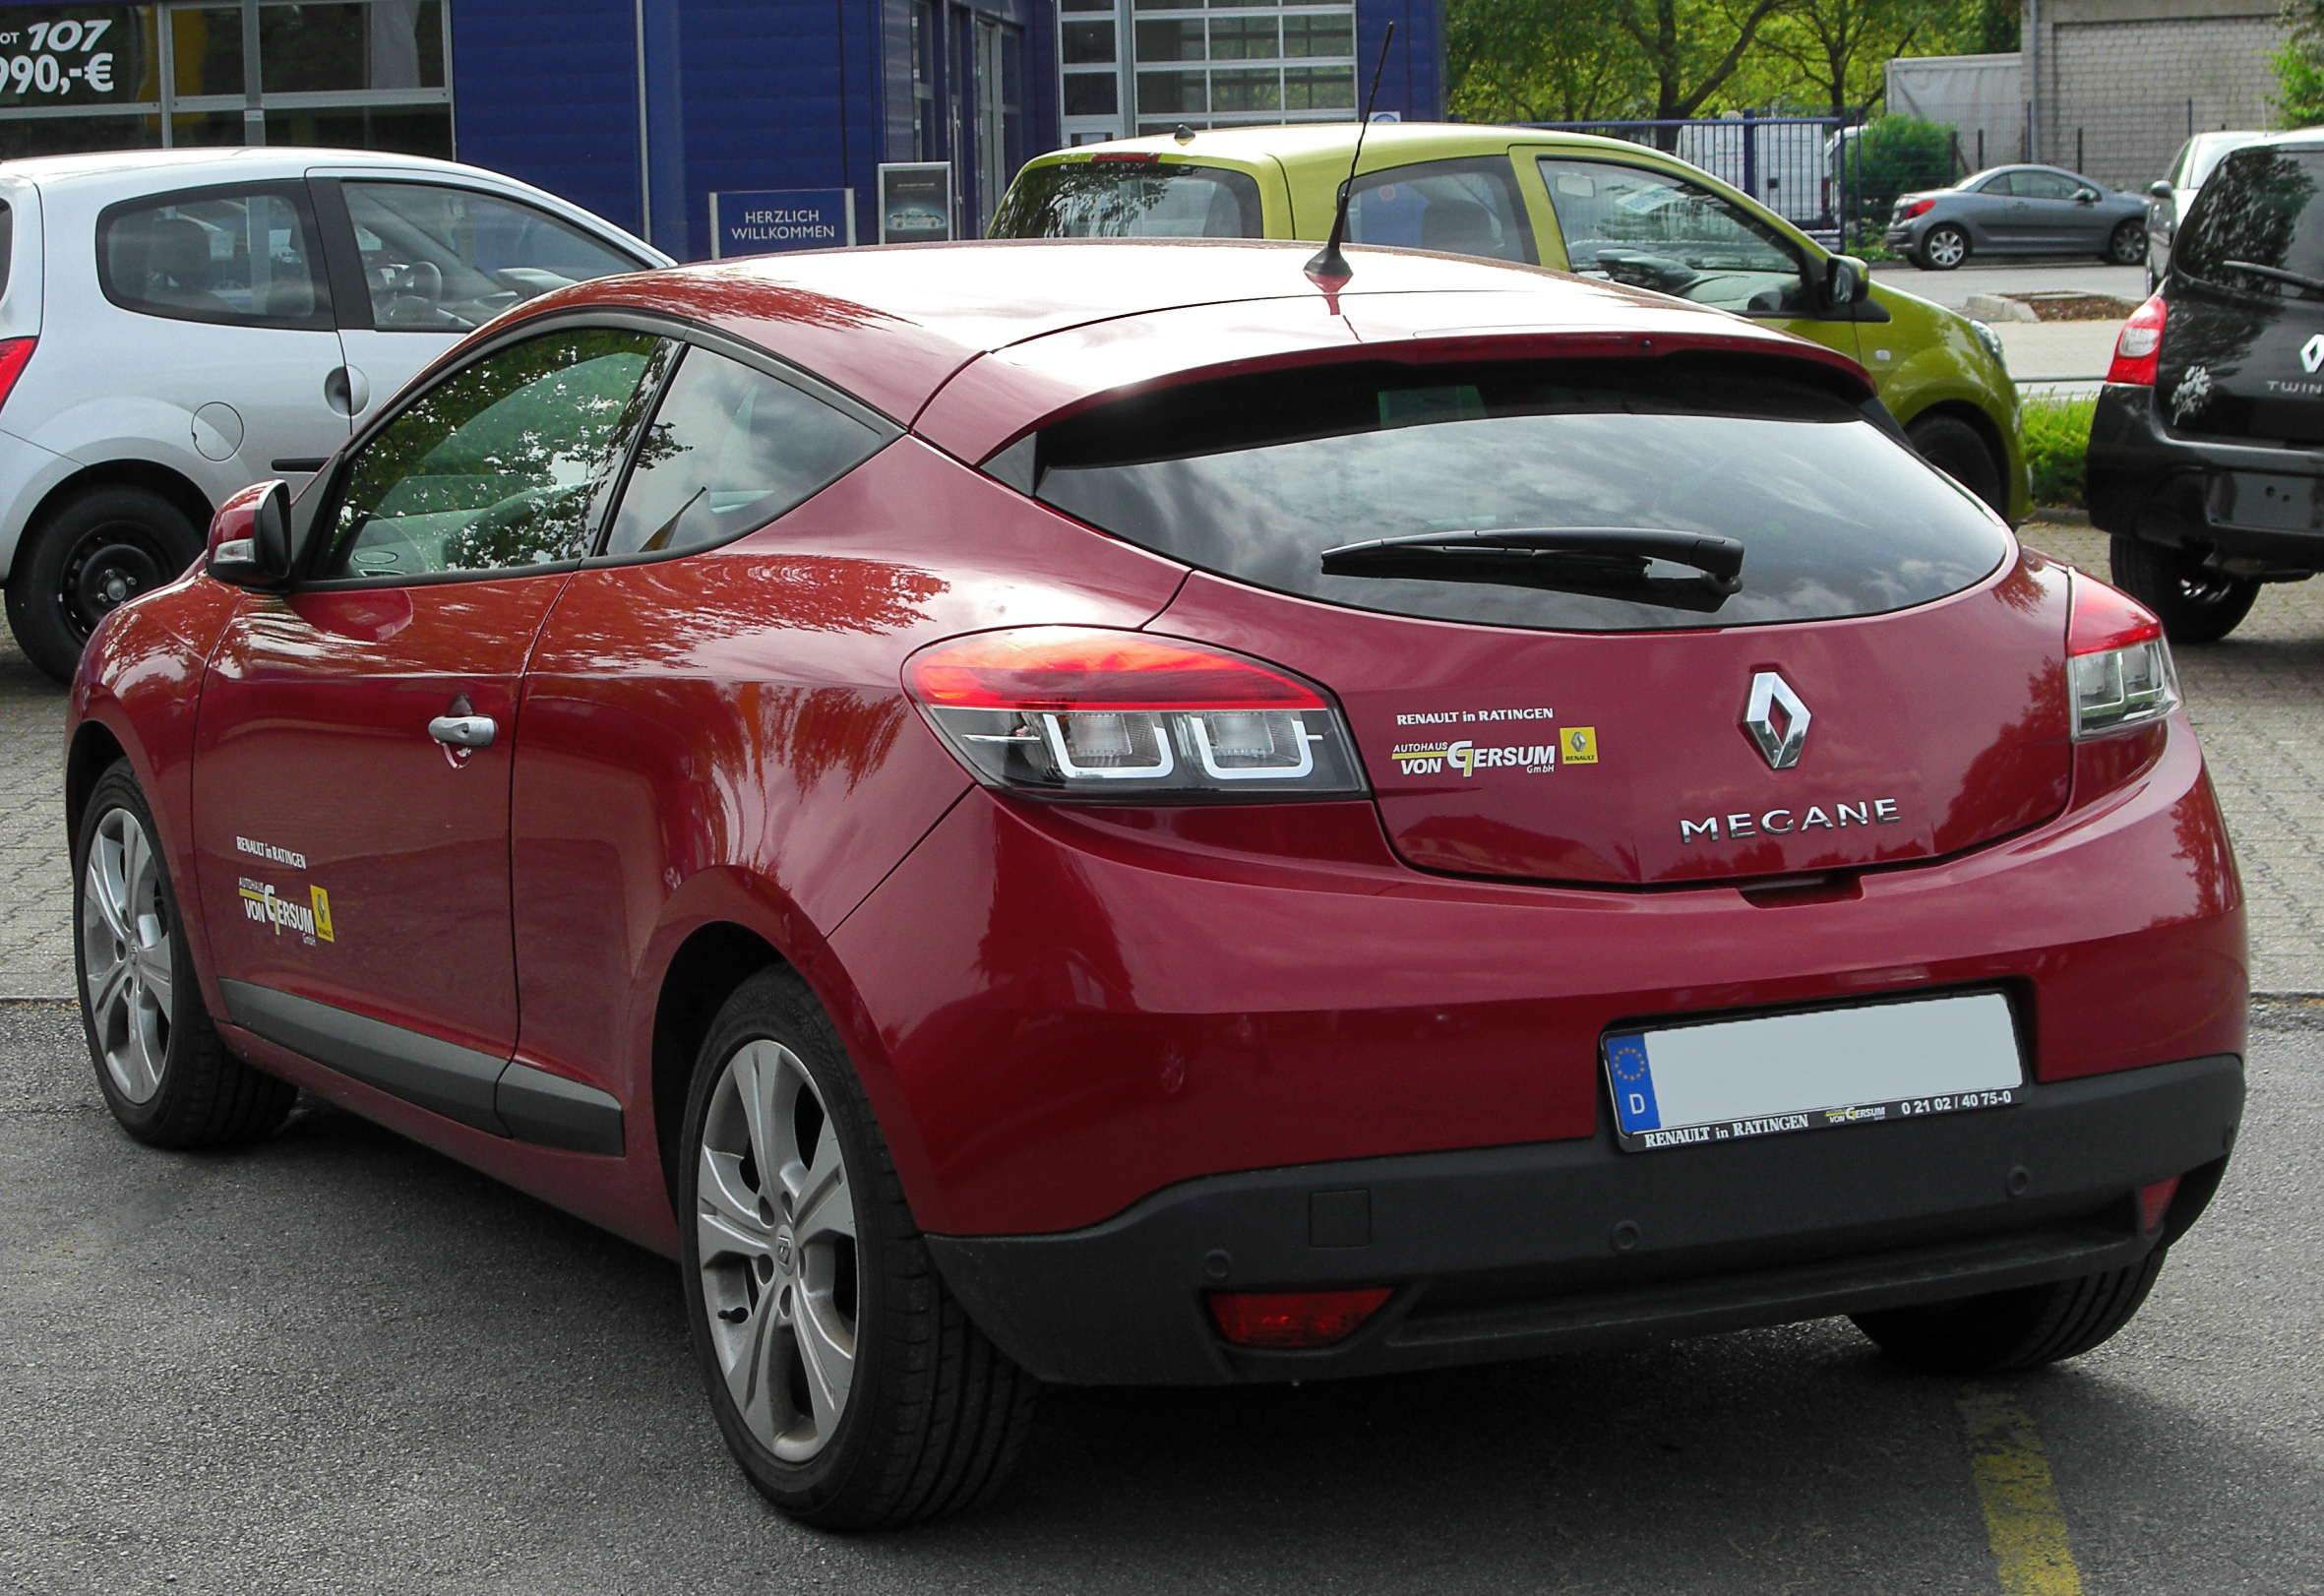 Pictures of renault megane iii 2010